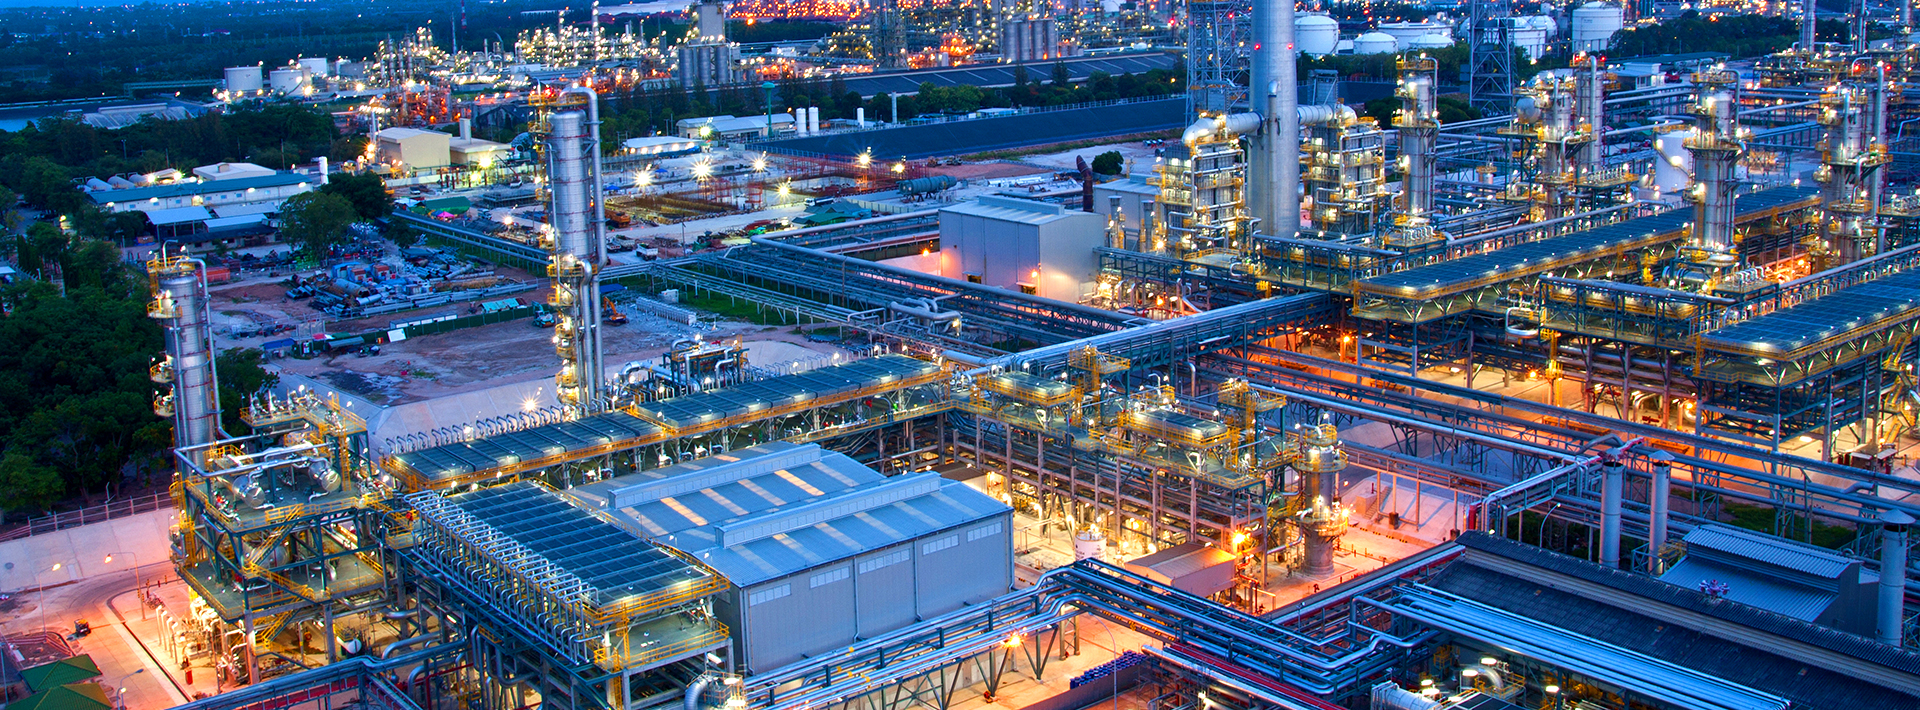 ICa is important within gas processing facilities